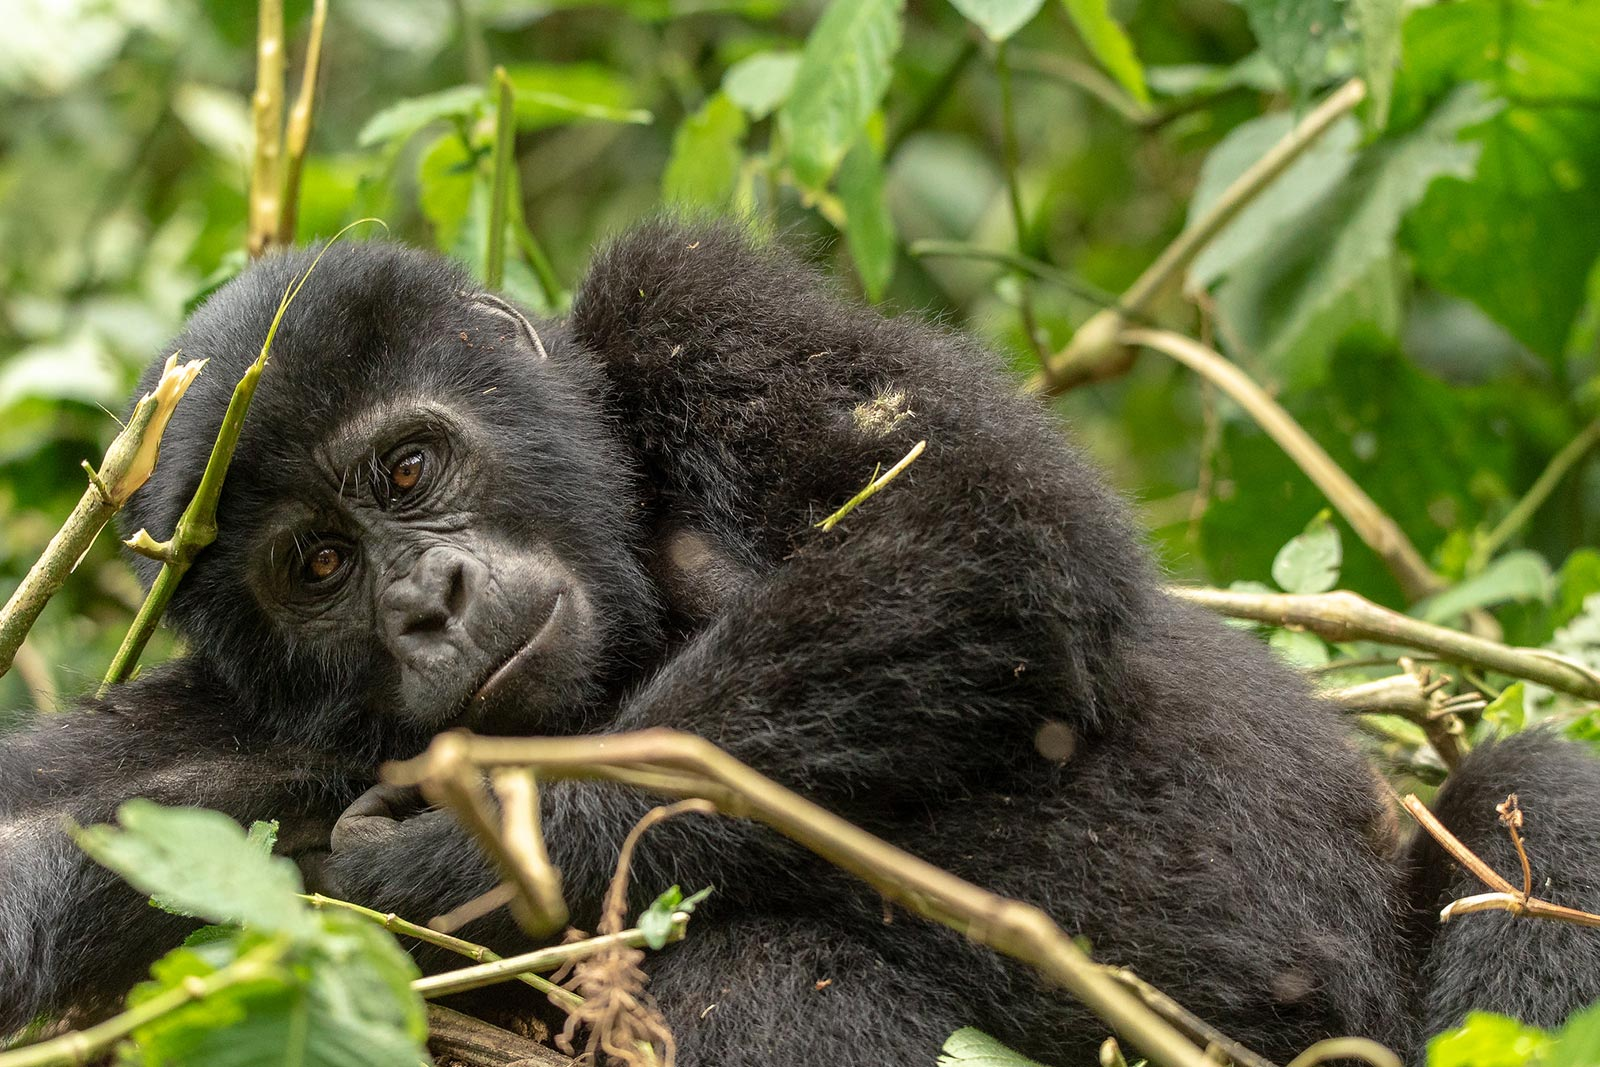 Day 8 — Big day, the awaited second gorilla tracking